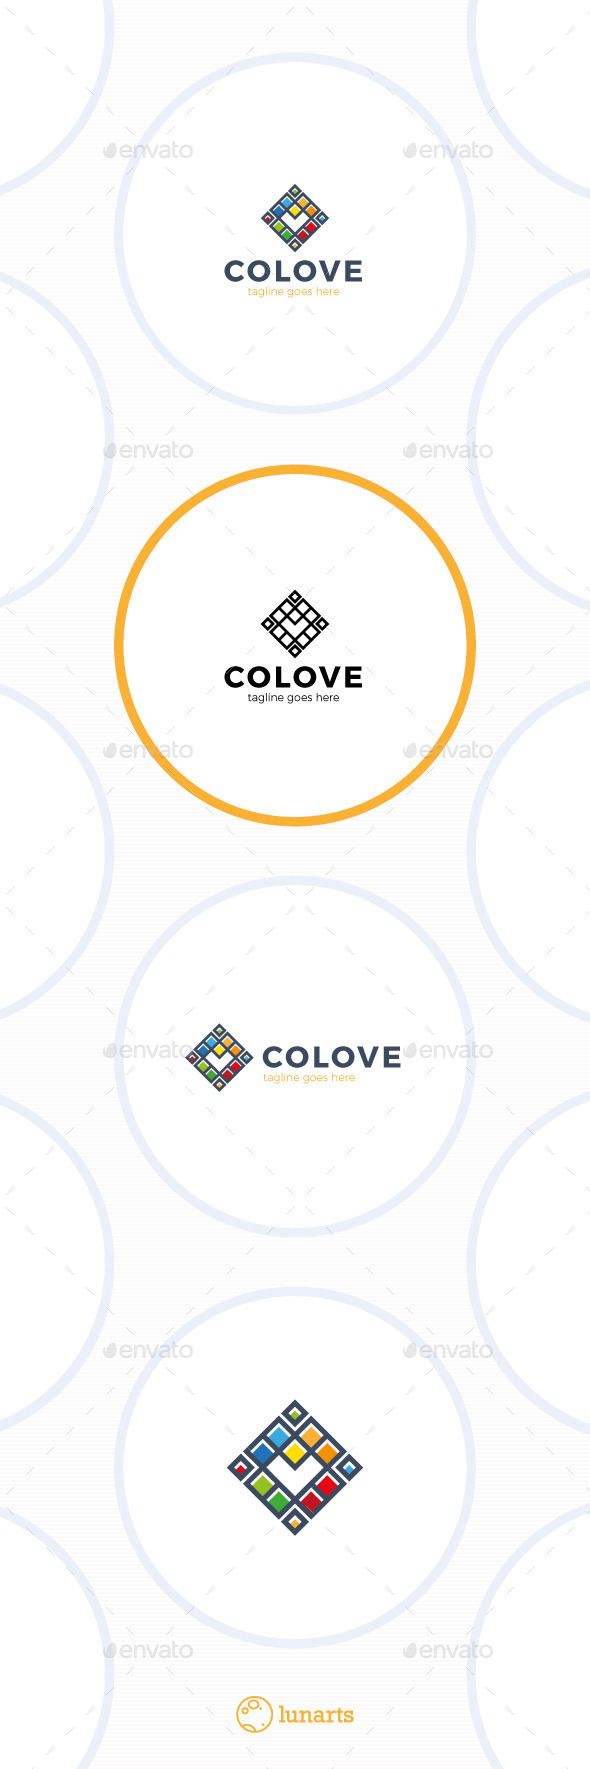 Colorful Square Heart Logo - Abstract Logo Templates